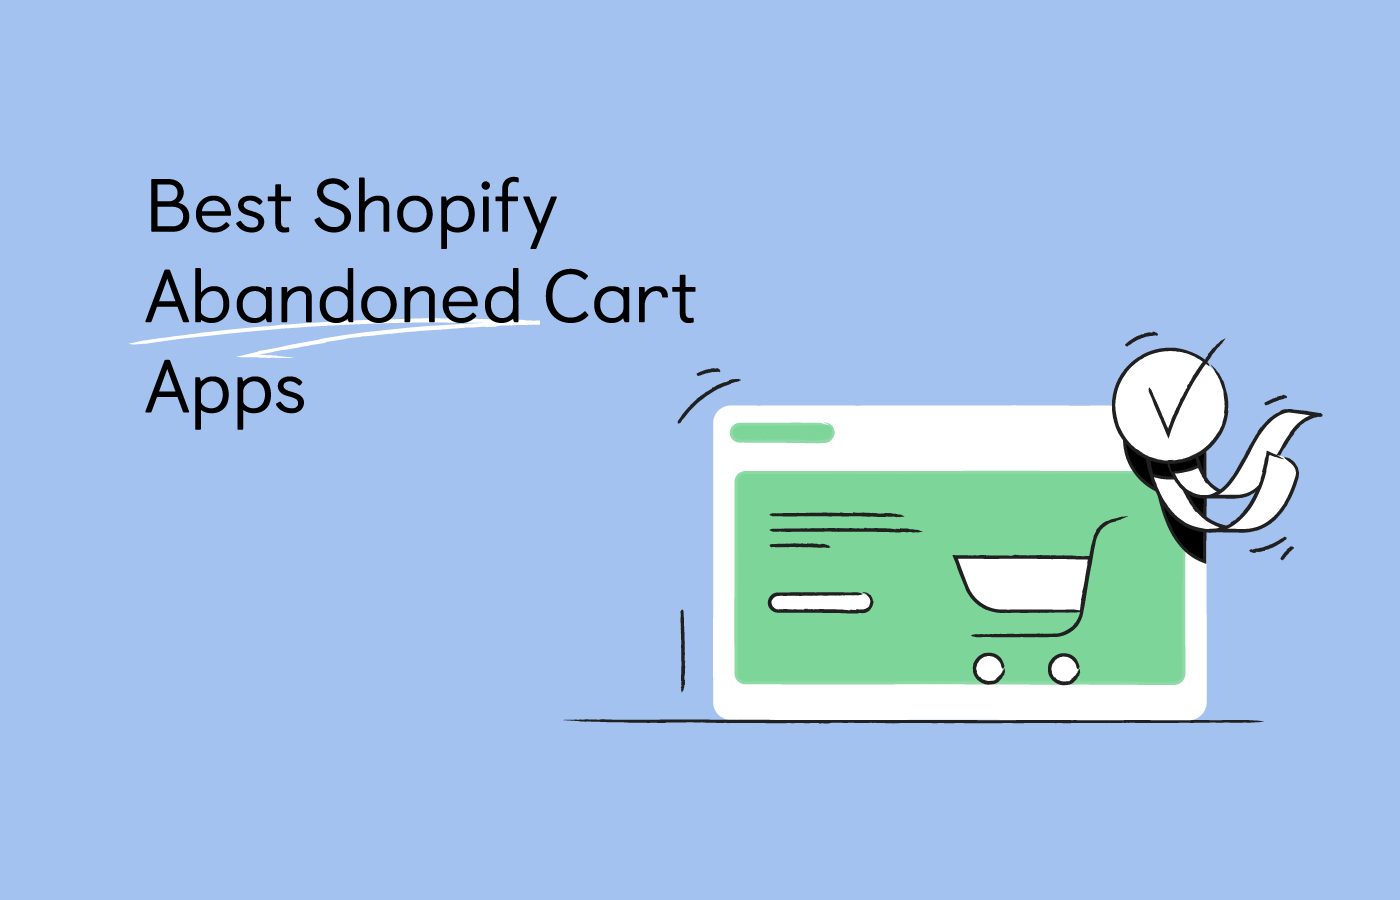 8 Best Shopify Abandoned Cart Apps for Your Store